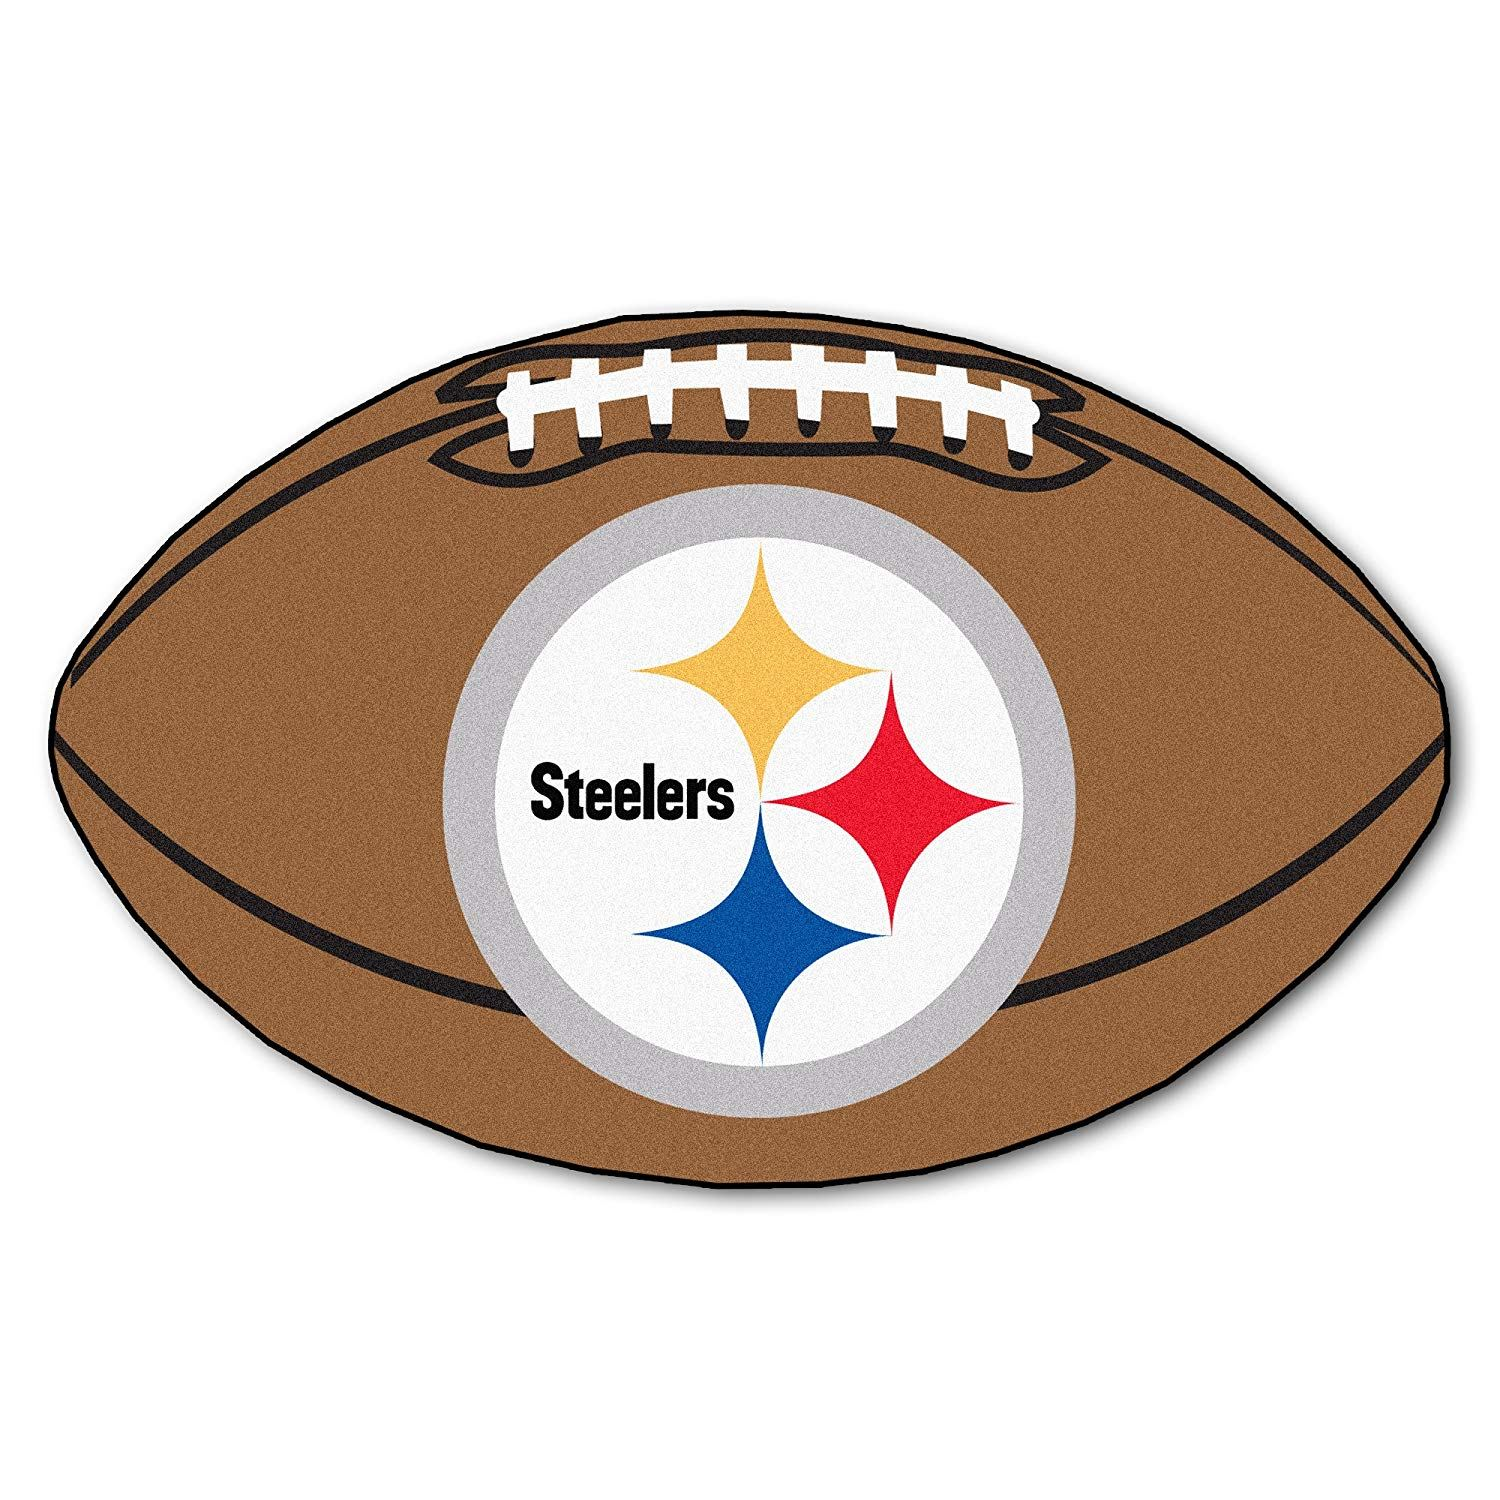 Steelers football clipart 2 » Clipart Portal.